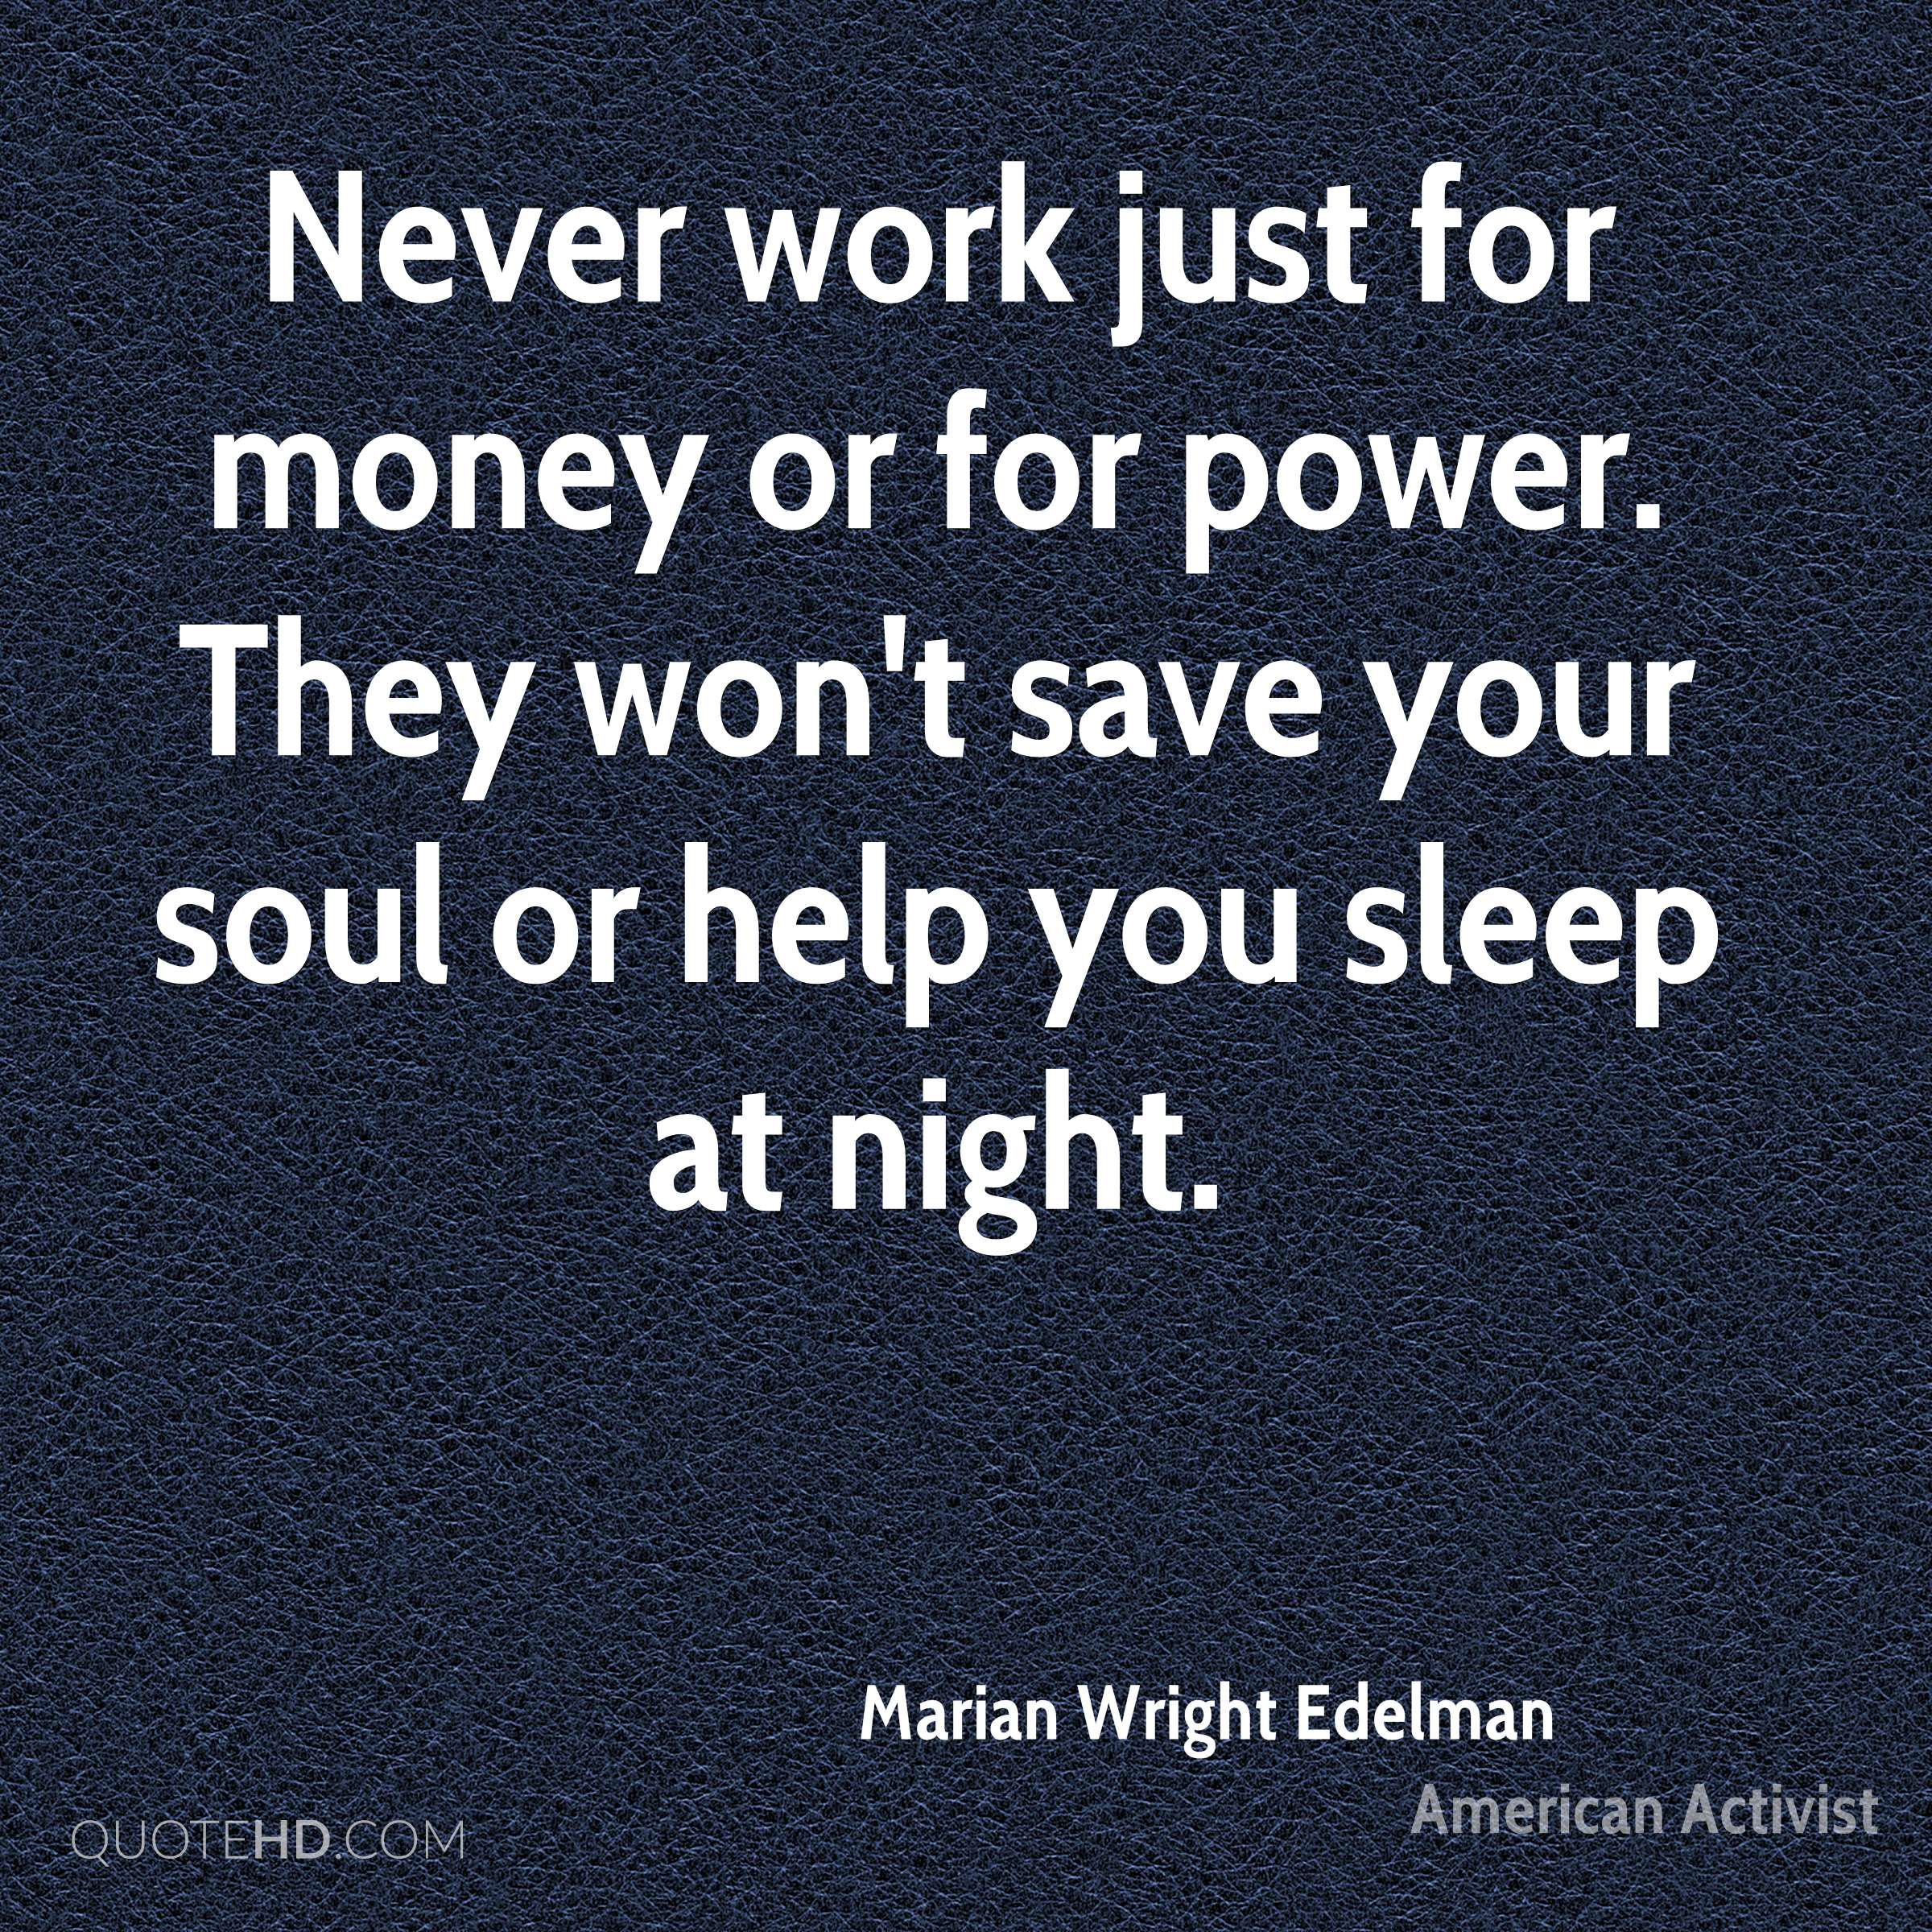 Never work just for money or for power. They won't save your soul or help you sleep at night.